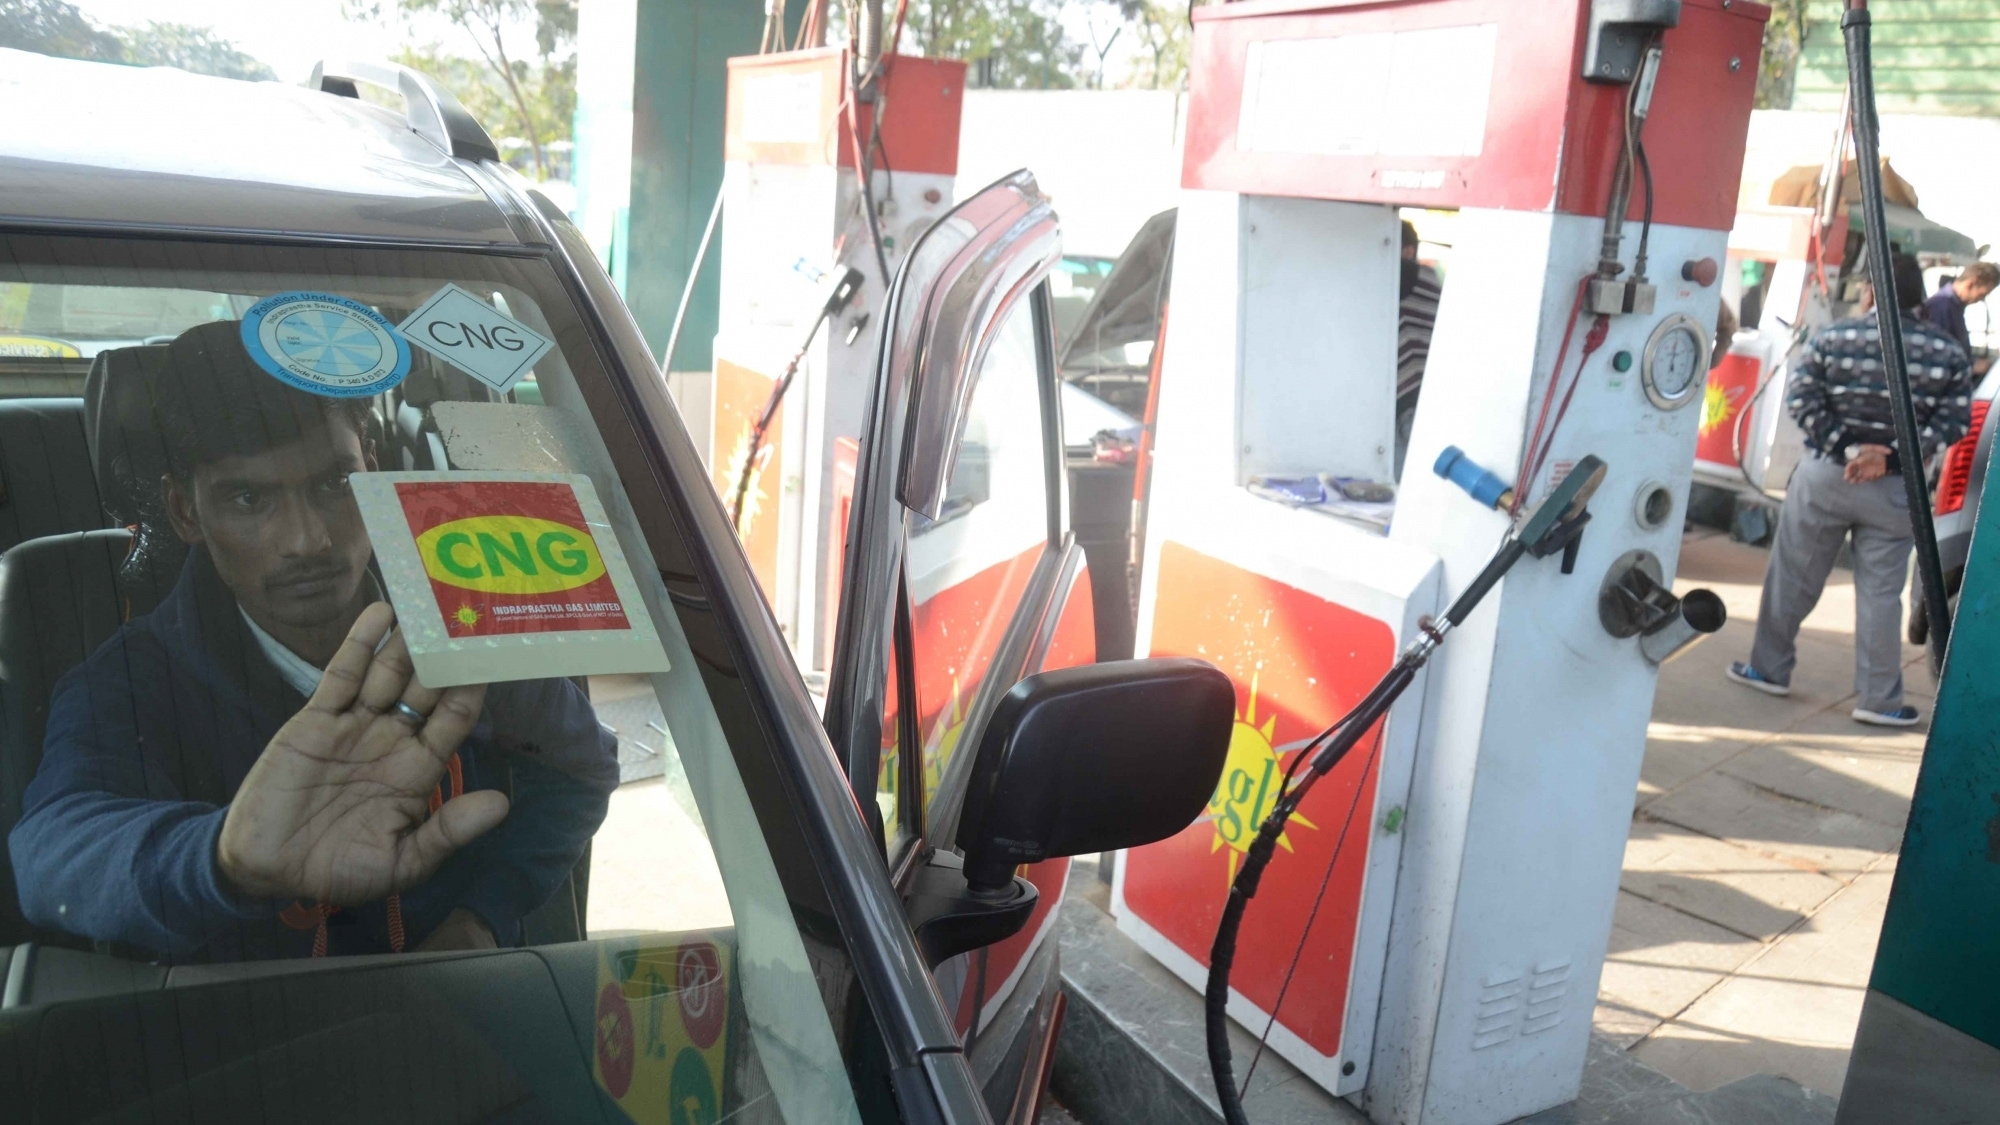 cng success in delhi Three-wheelers, and taxis—to compressed natural gas (cng) broadly, the results point to the success of a number of policies implemented in delhi but also to a number of areas of growing concern.